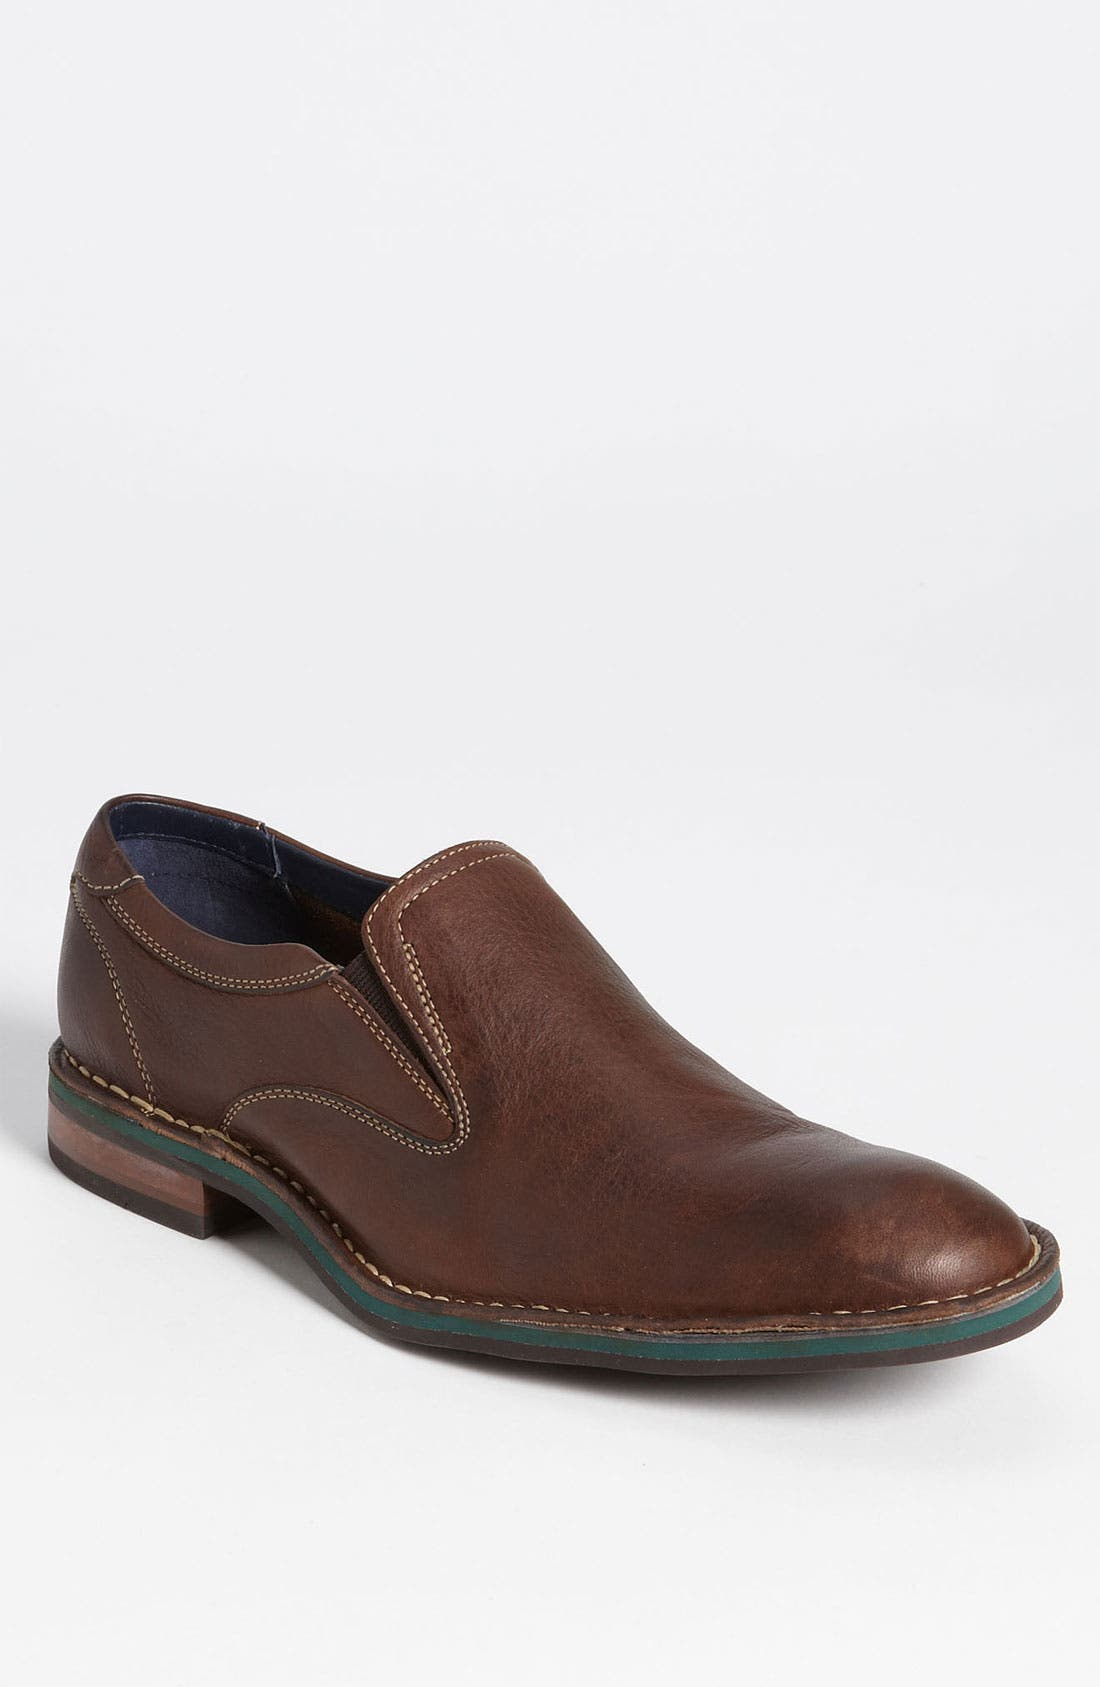 Main Image - Cole Haan 'Air Stratton' Casual Loafer